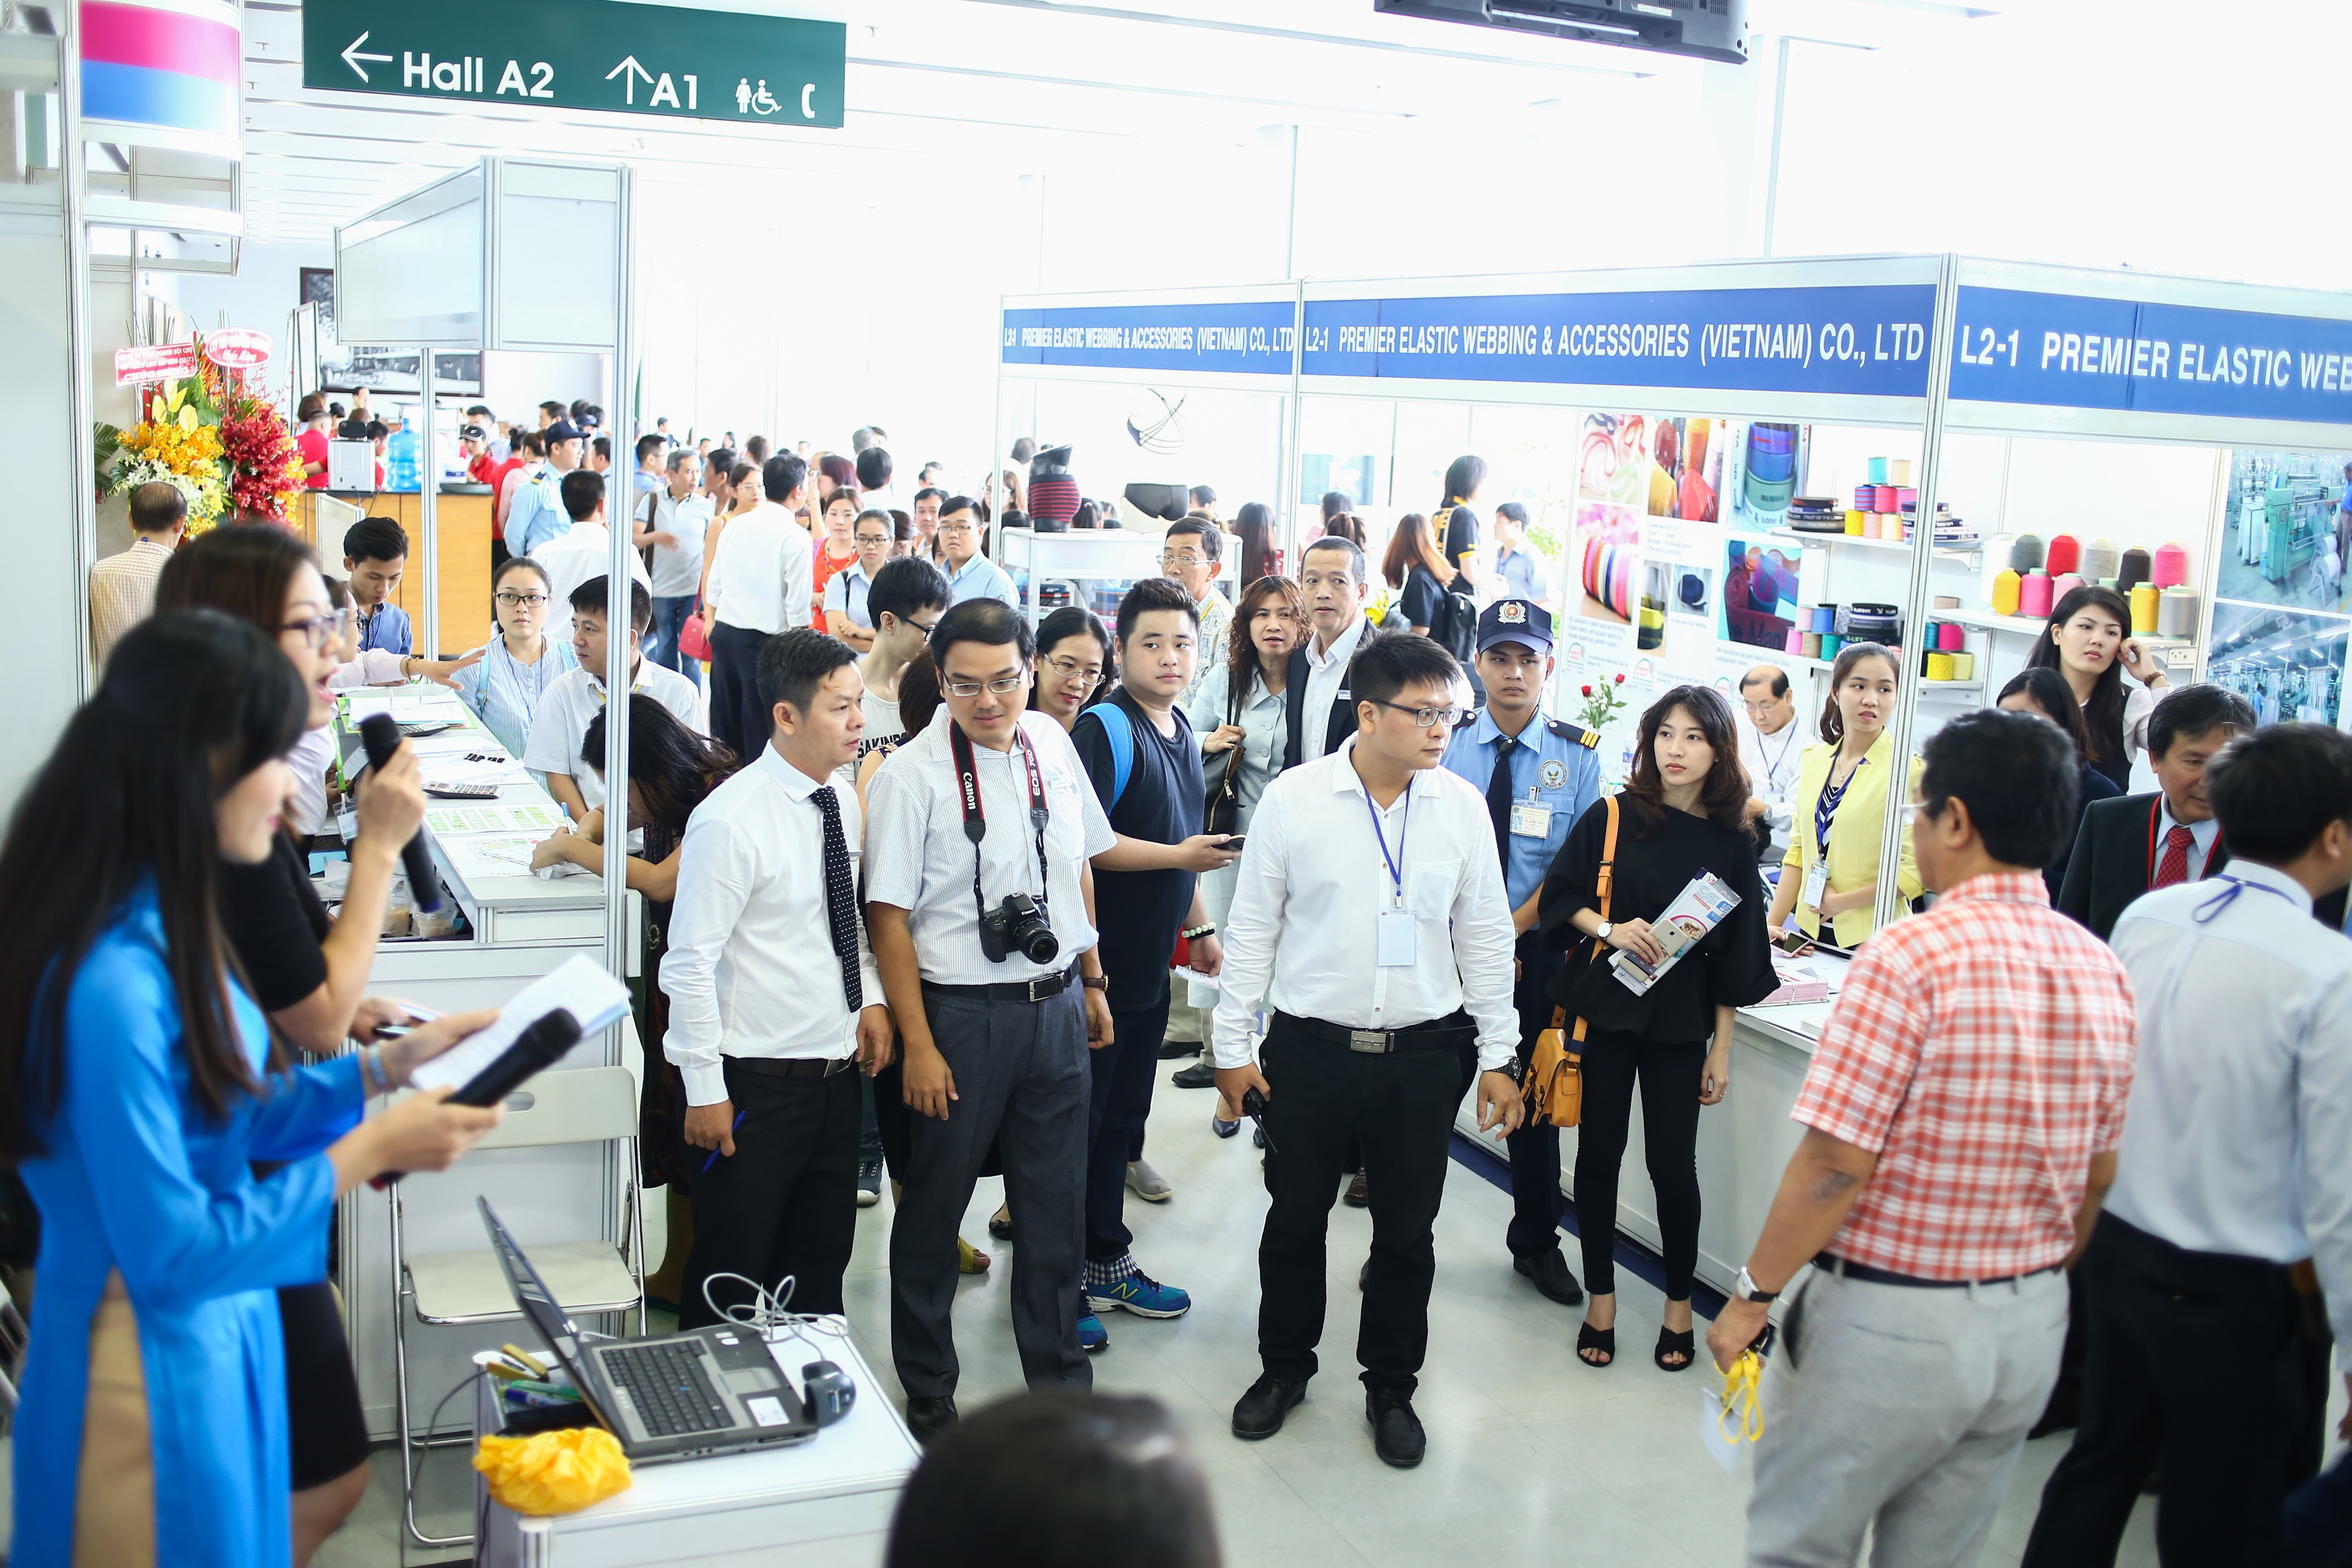 IMG_7263 - Vietnam Textile & Garment Industry Expo (30th)